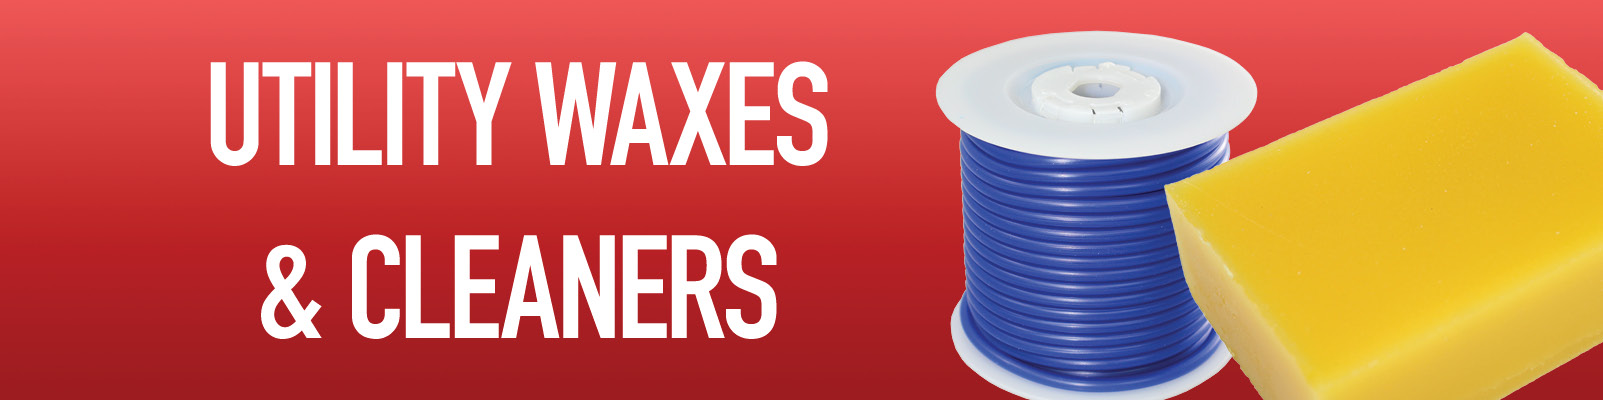 Utility Wax Wire & Cleaners